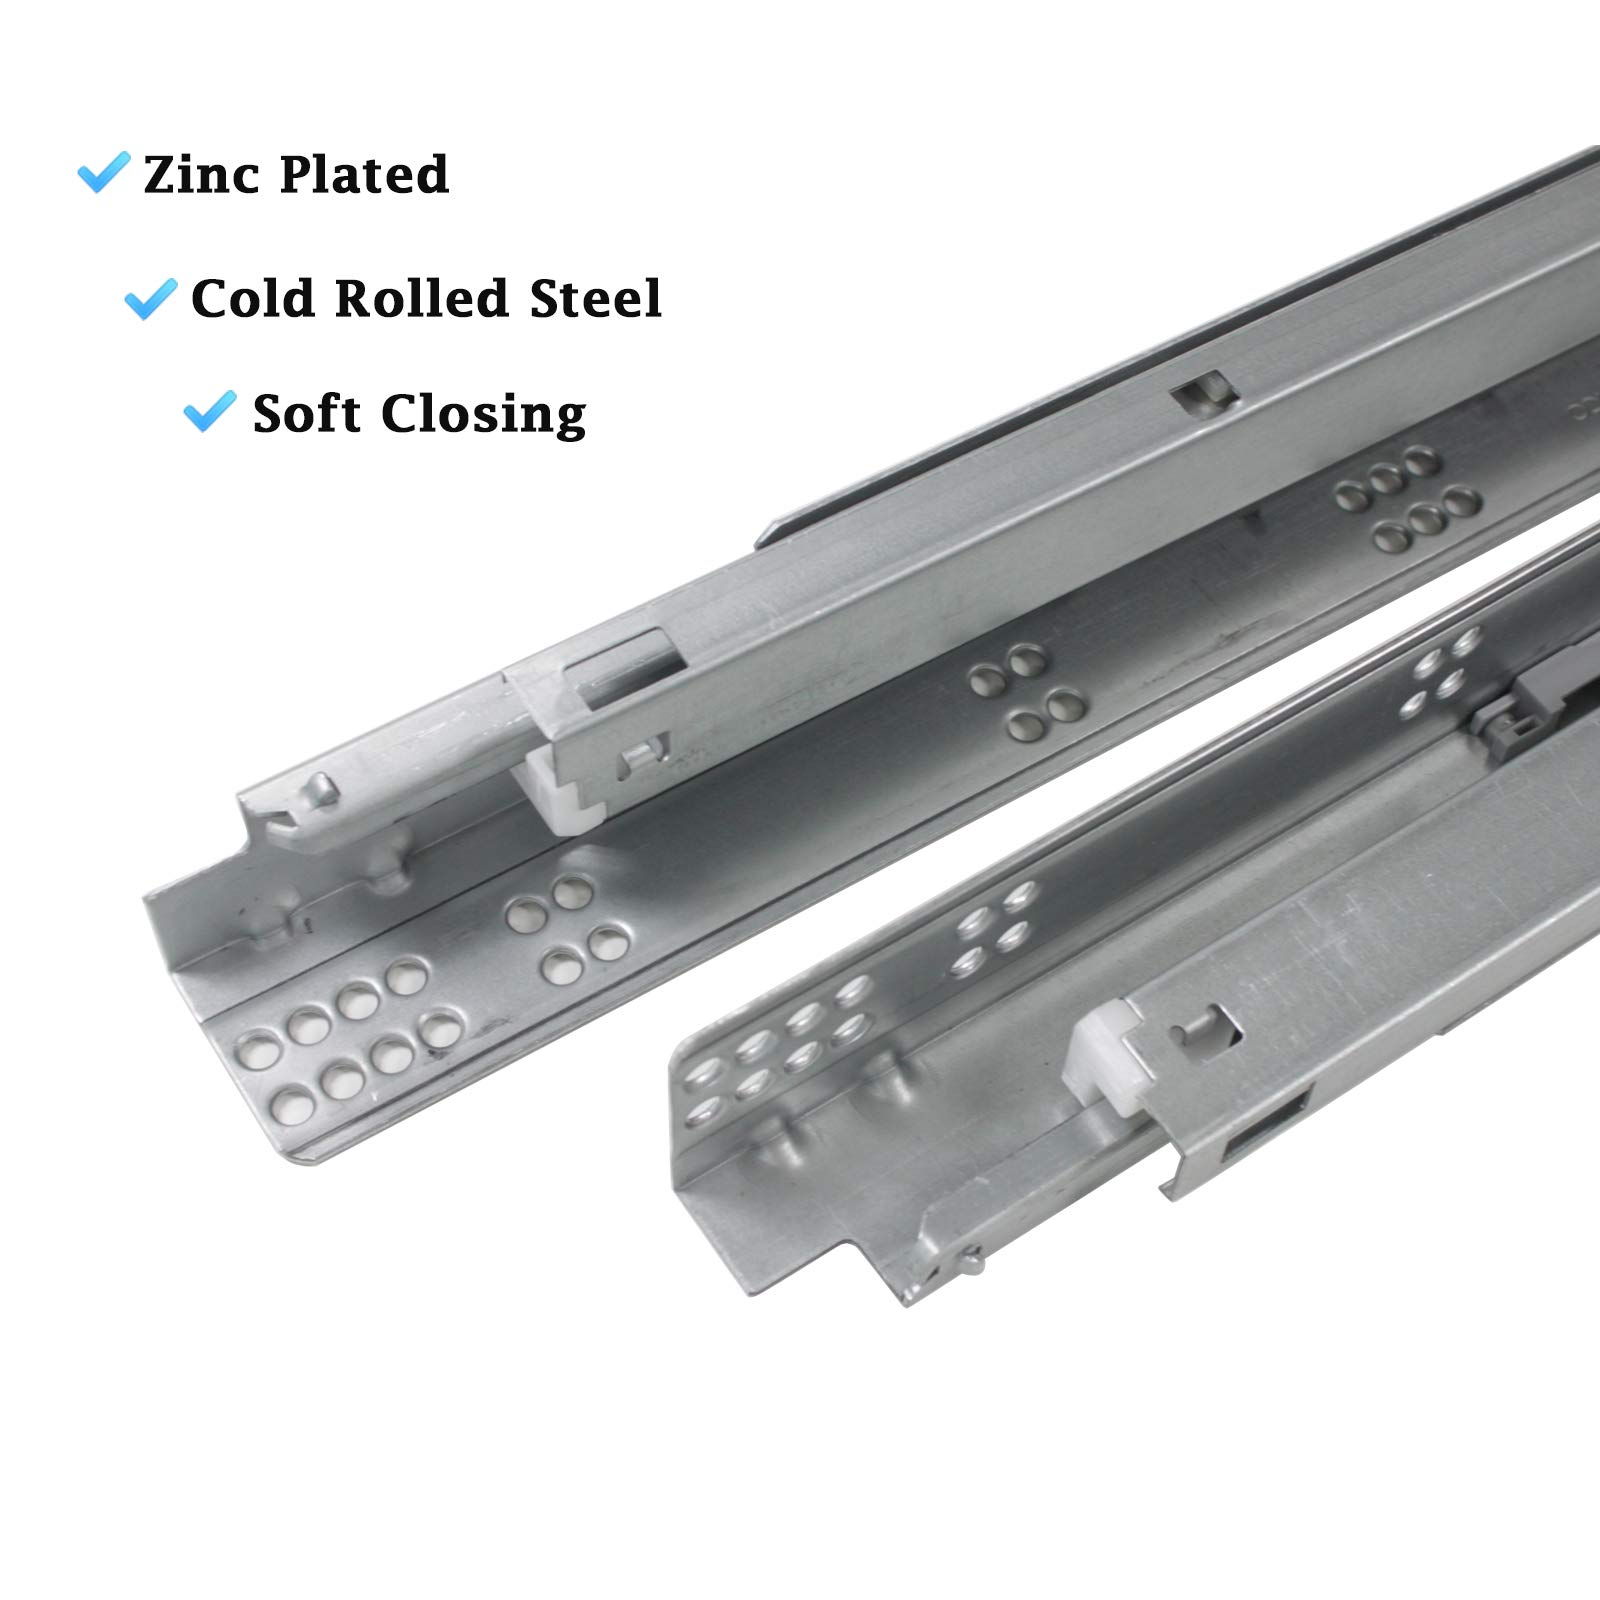 10 Pair 21'' Undermount Drawer Slides Soft Close Full Extension Drawer Rails, Mounting Screws and Adjustable Locking Device Included, 85 lb Load Capacity, Zinc Plated Cold Rolled Steel by Knobonly (Image #3)